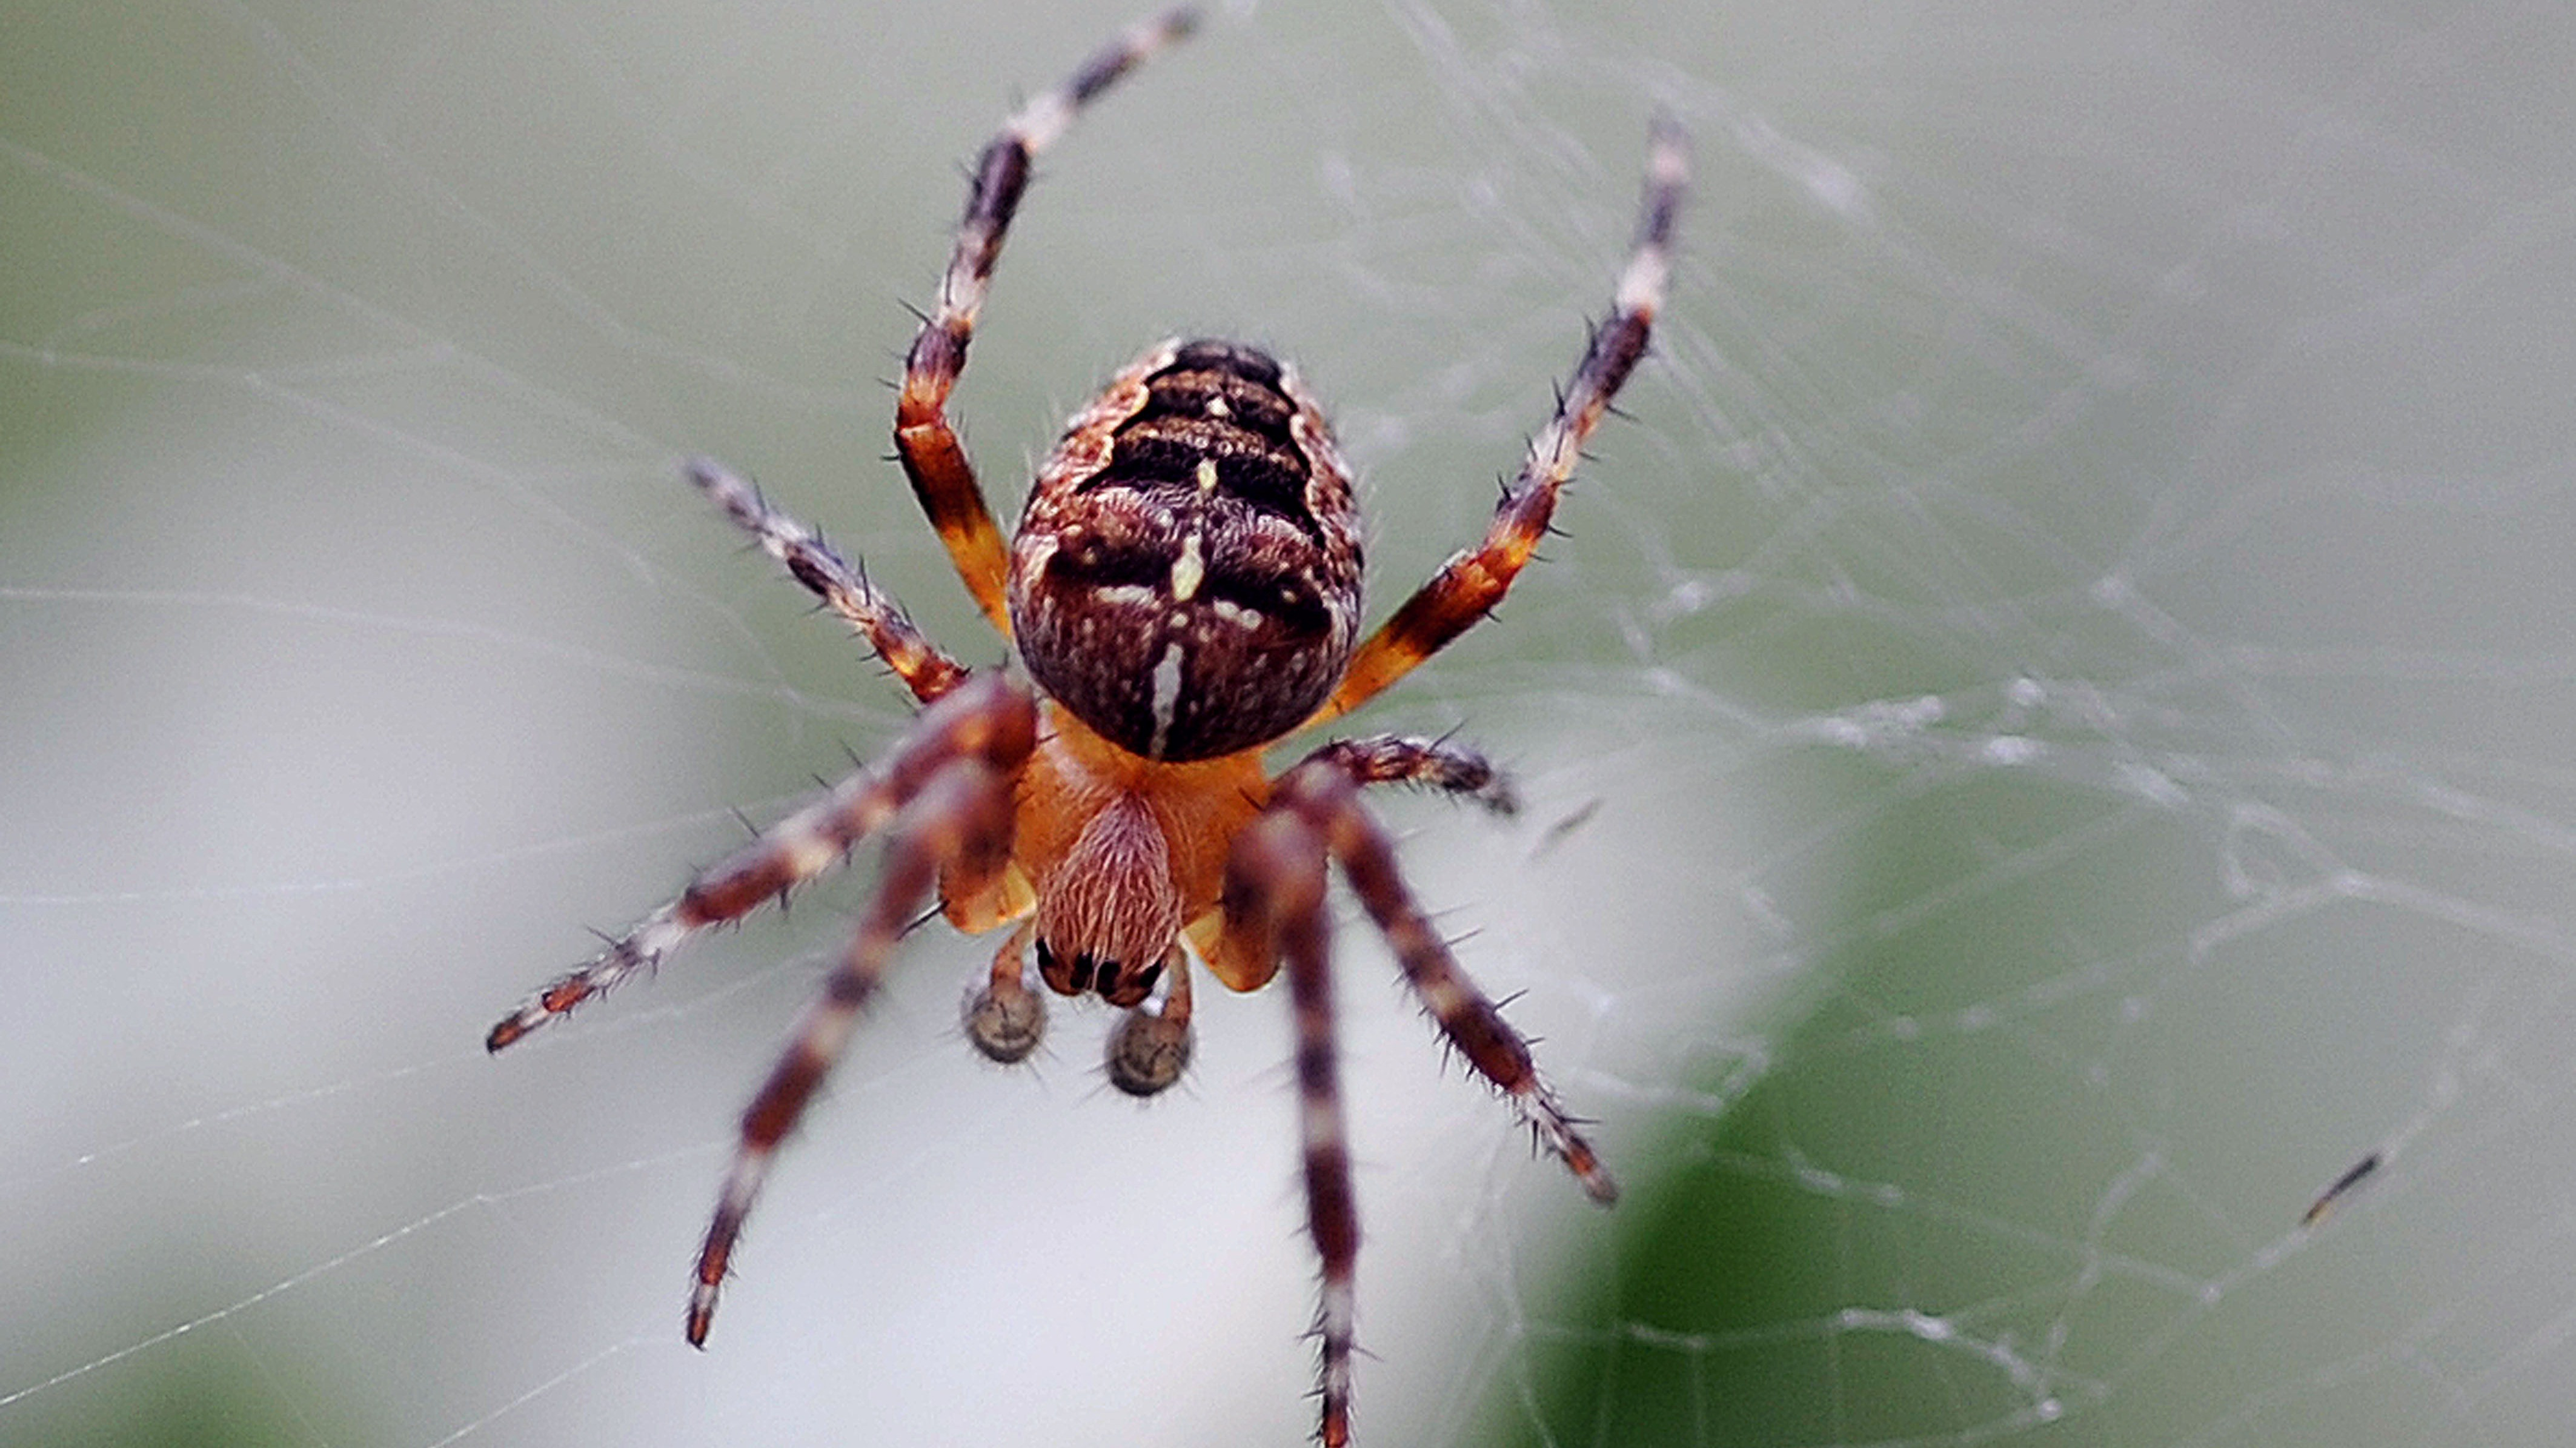 Man accidentally sets house on fire trying to kill spider ...